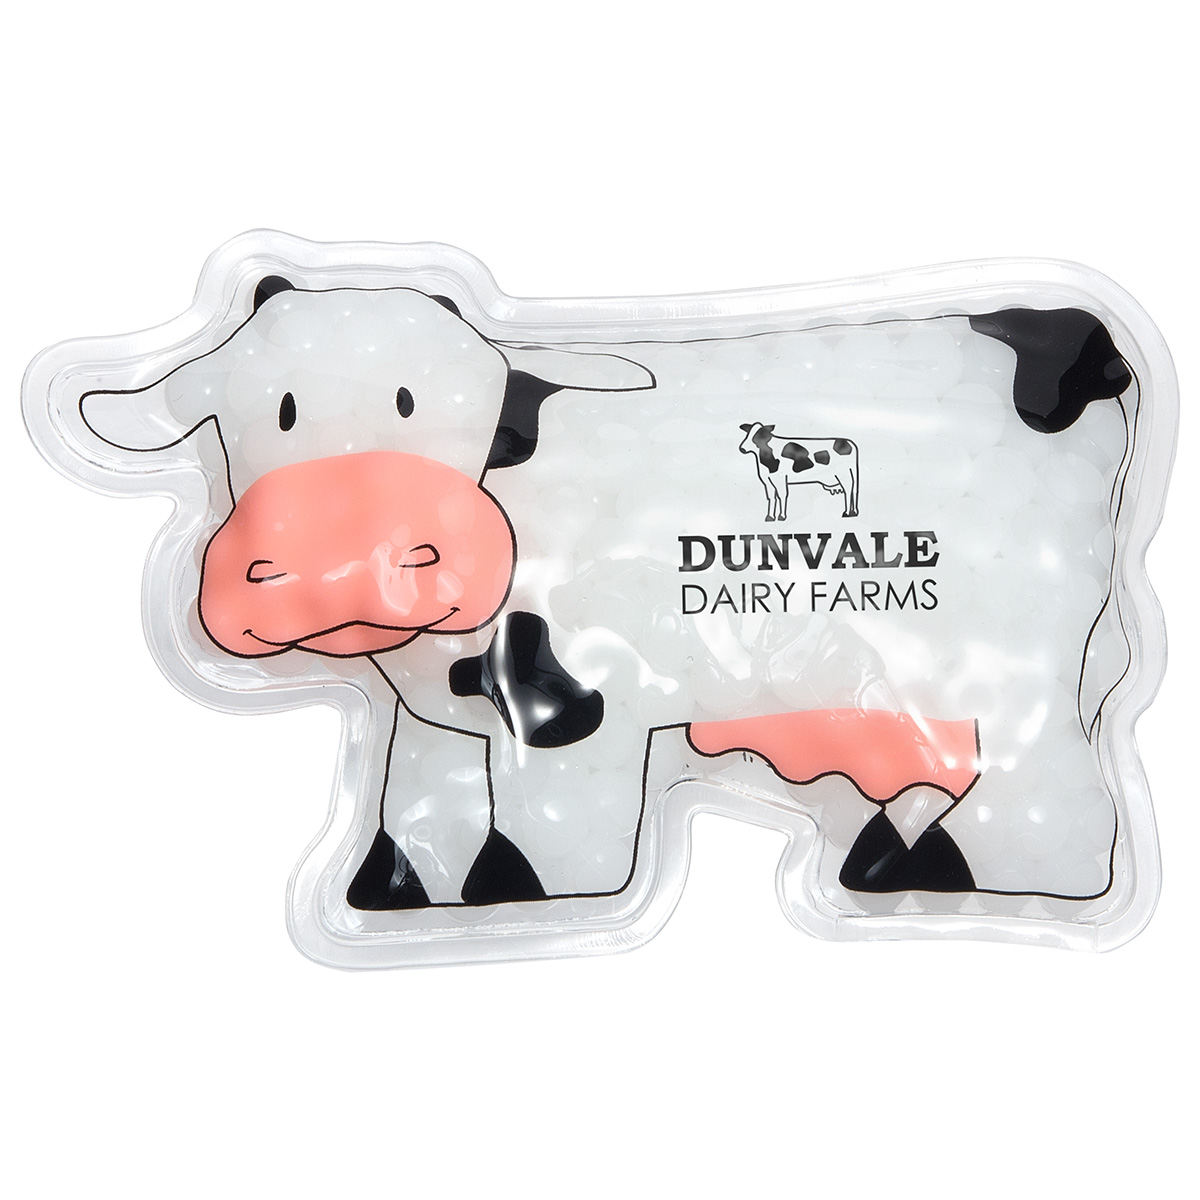 Milk Cow Hot/ Cold Pack (FDA approved, Passed TRA test), WHF-MC15 - 1 Colour Imprint